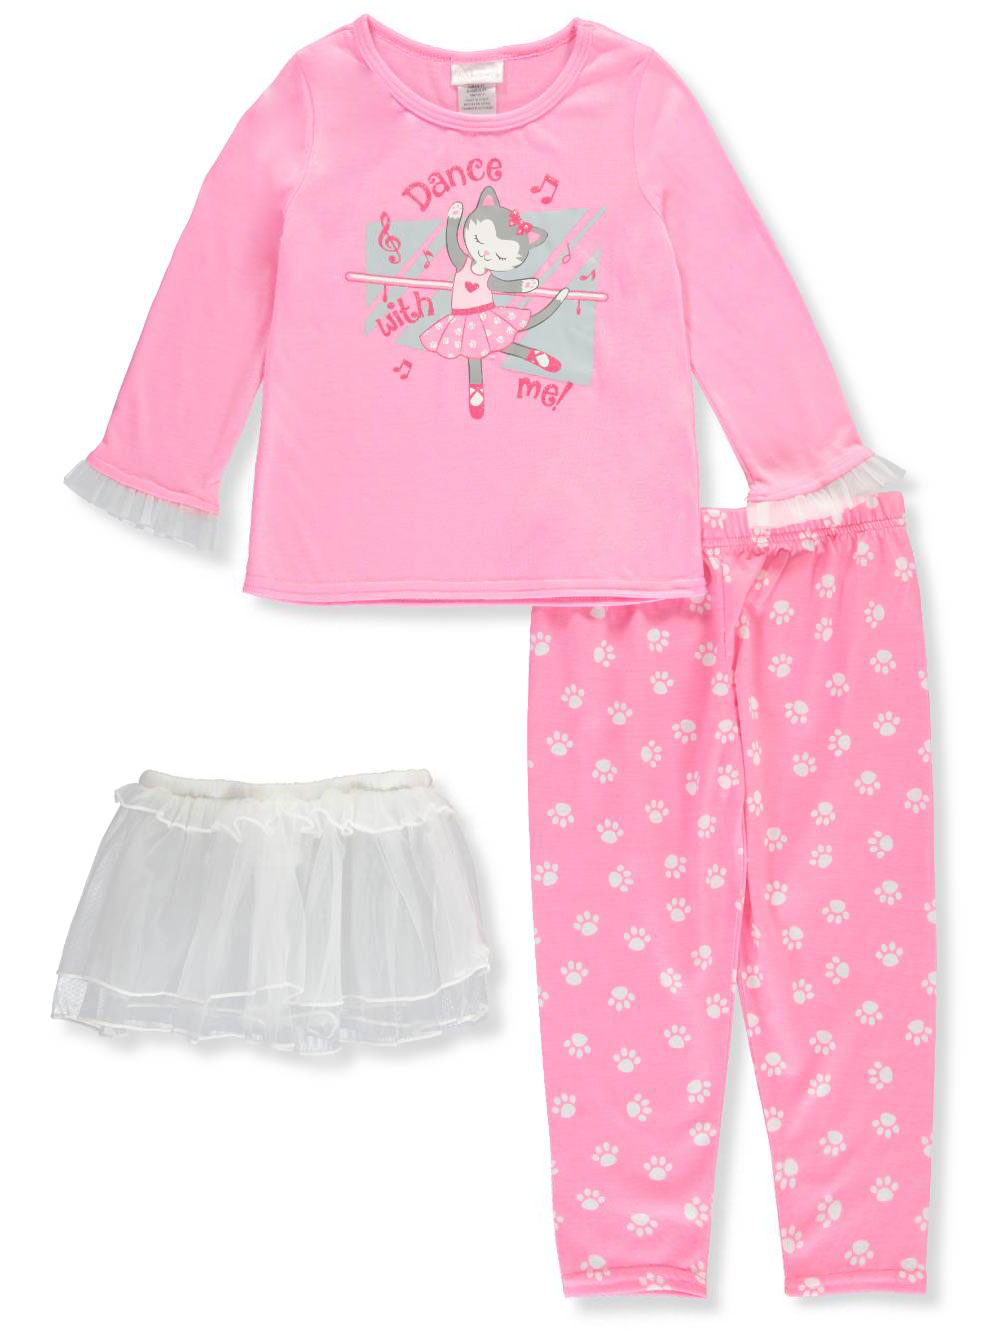 Size 4t Pajamas for Girls